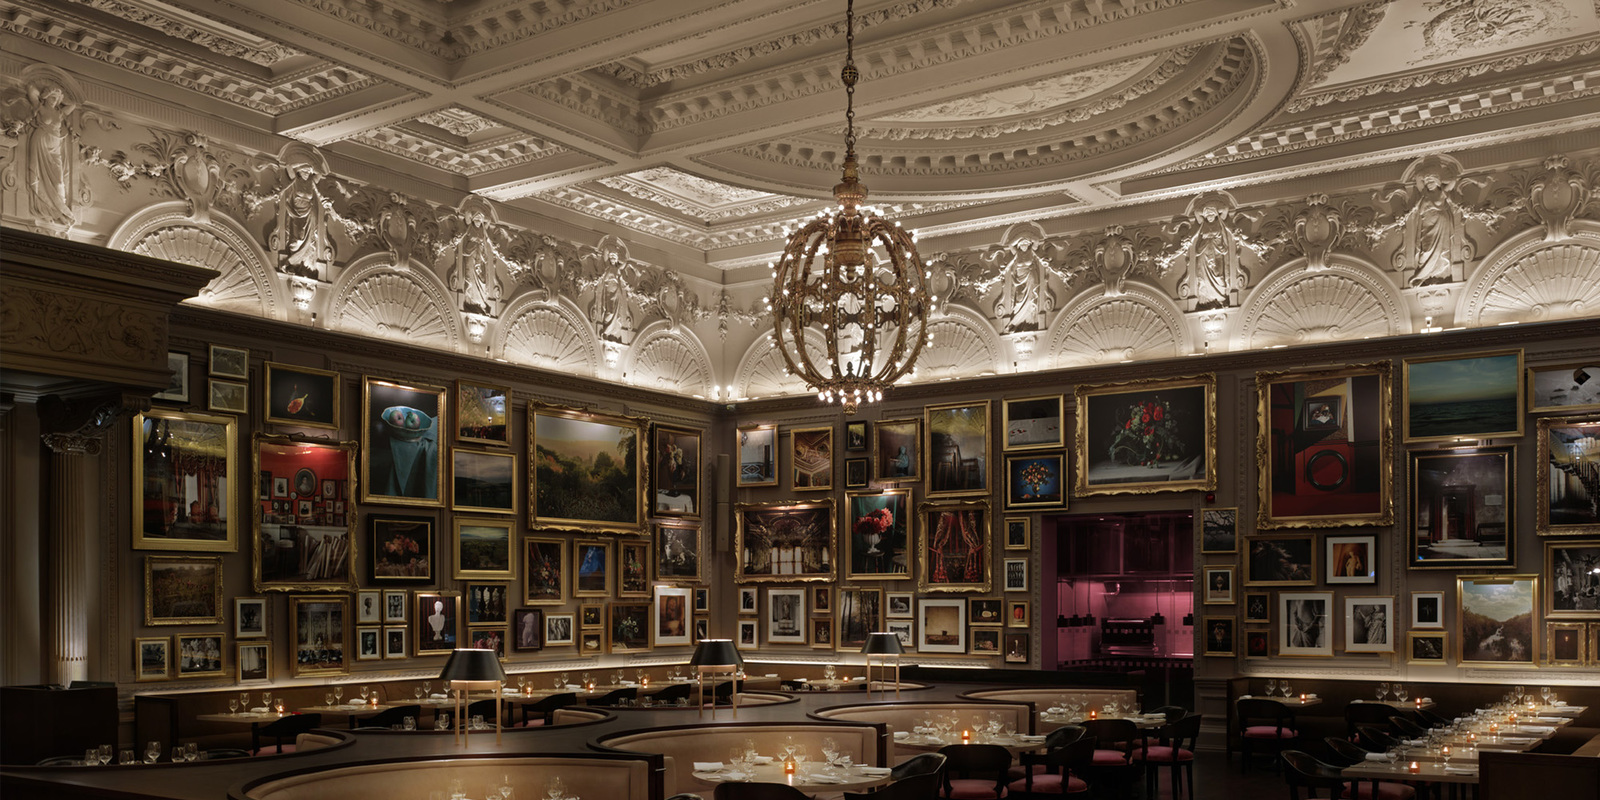 . 5 Of The Most Impressive Dining Rooms In London